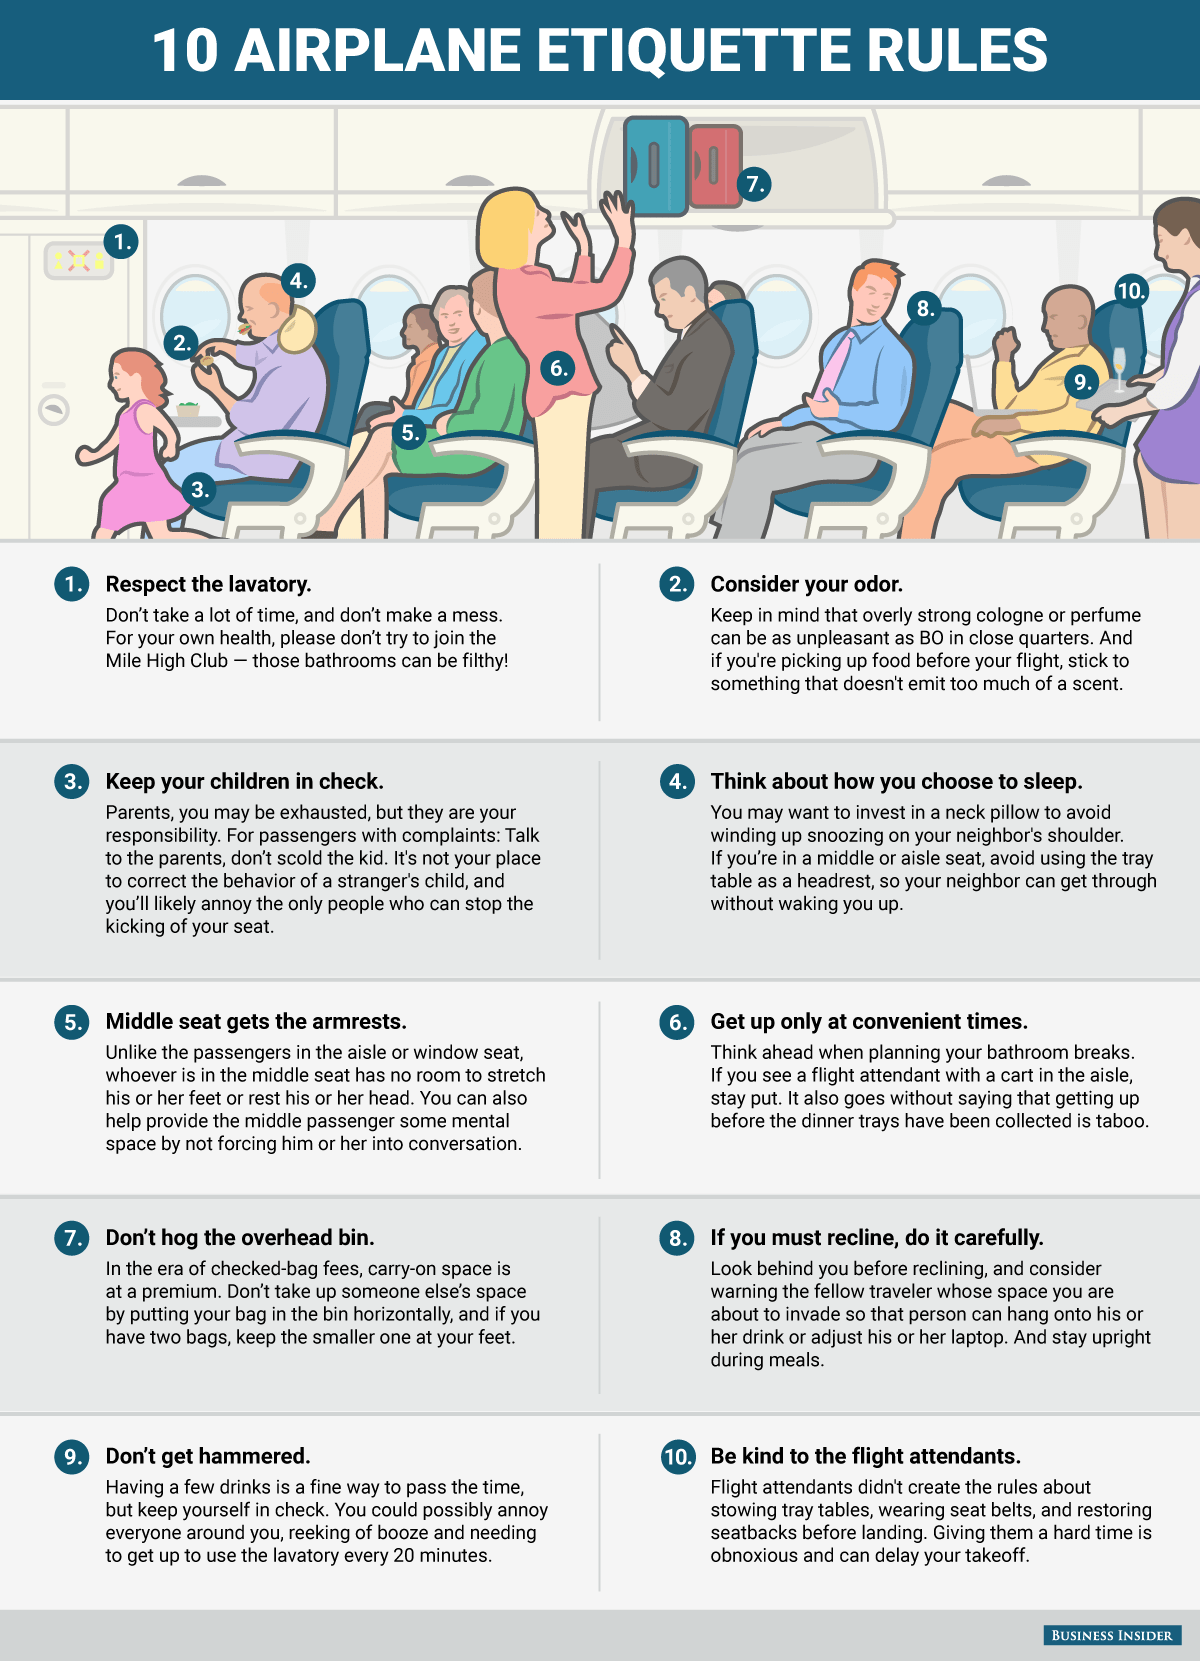 Etiquette Rules For Flying